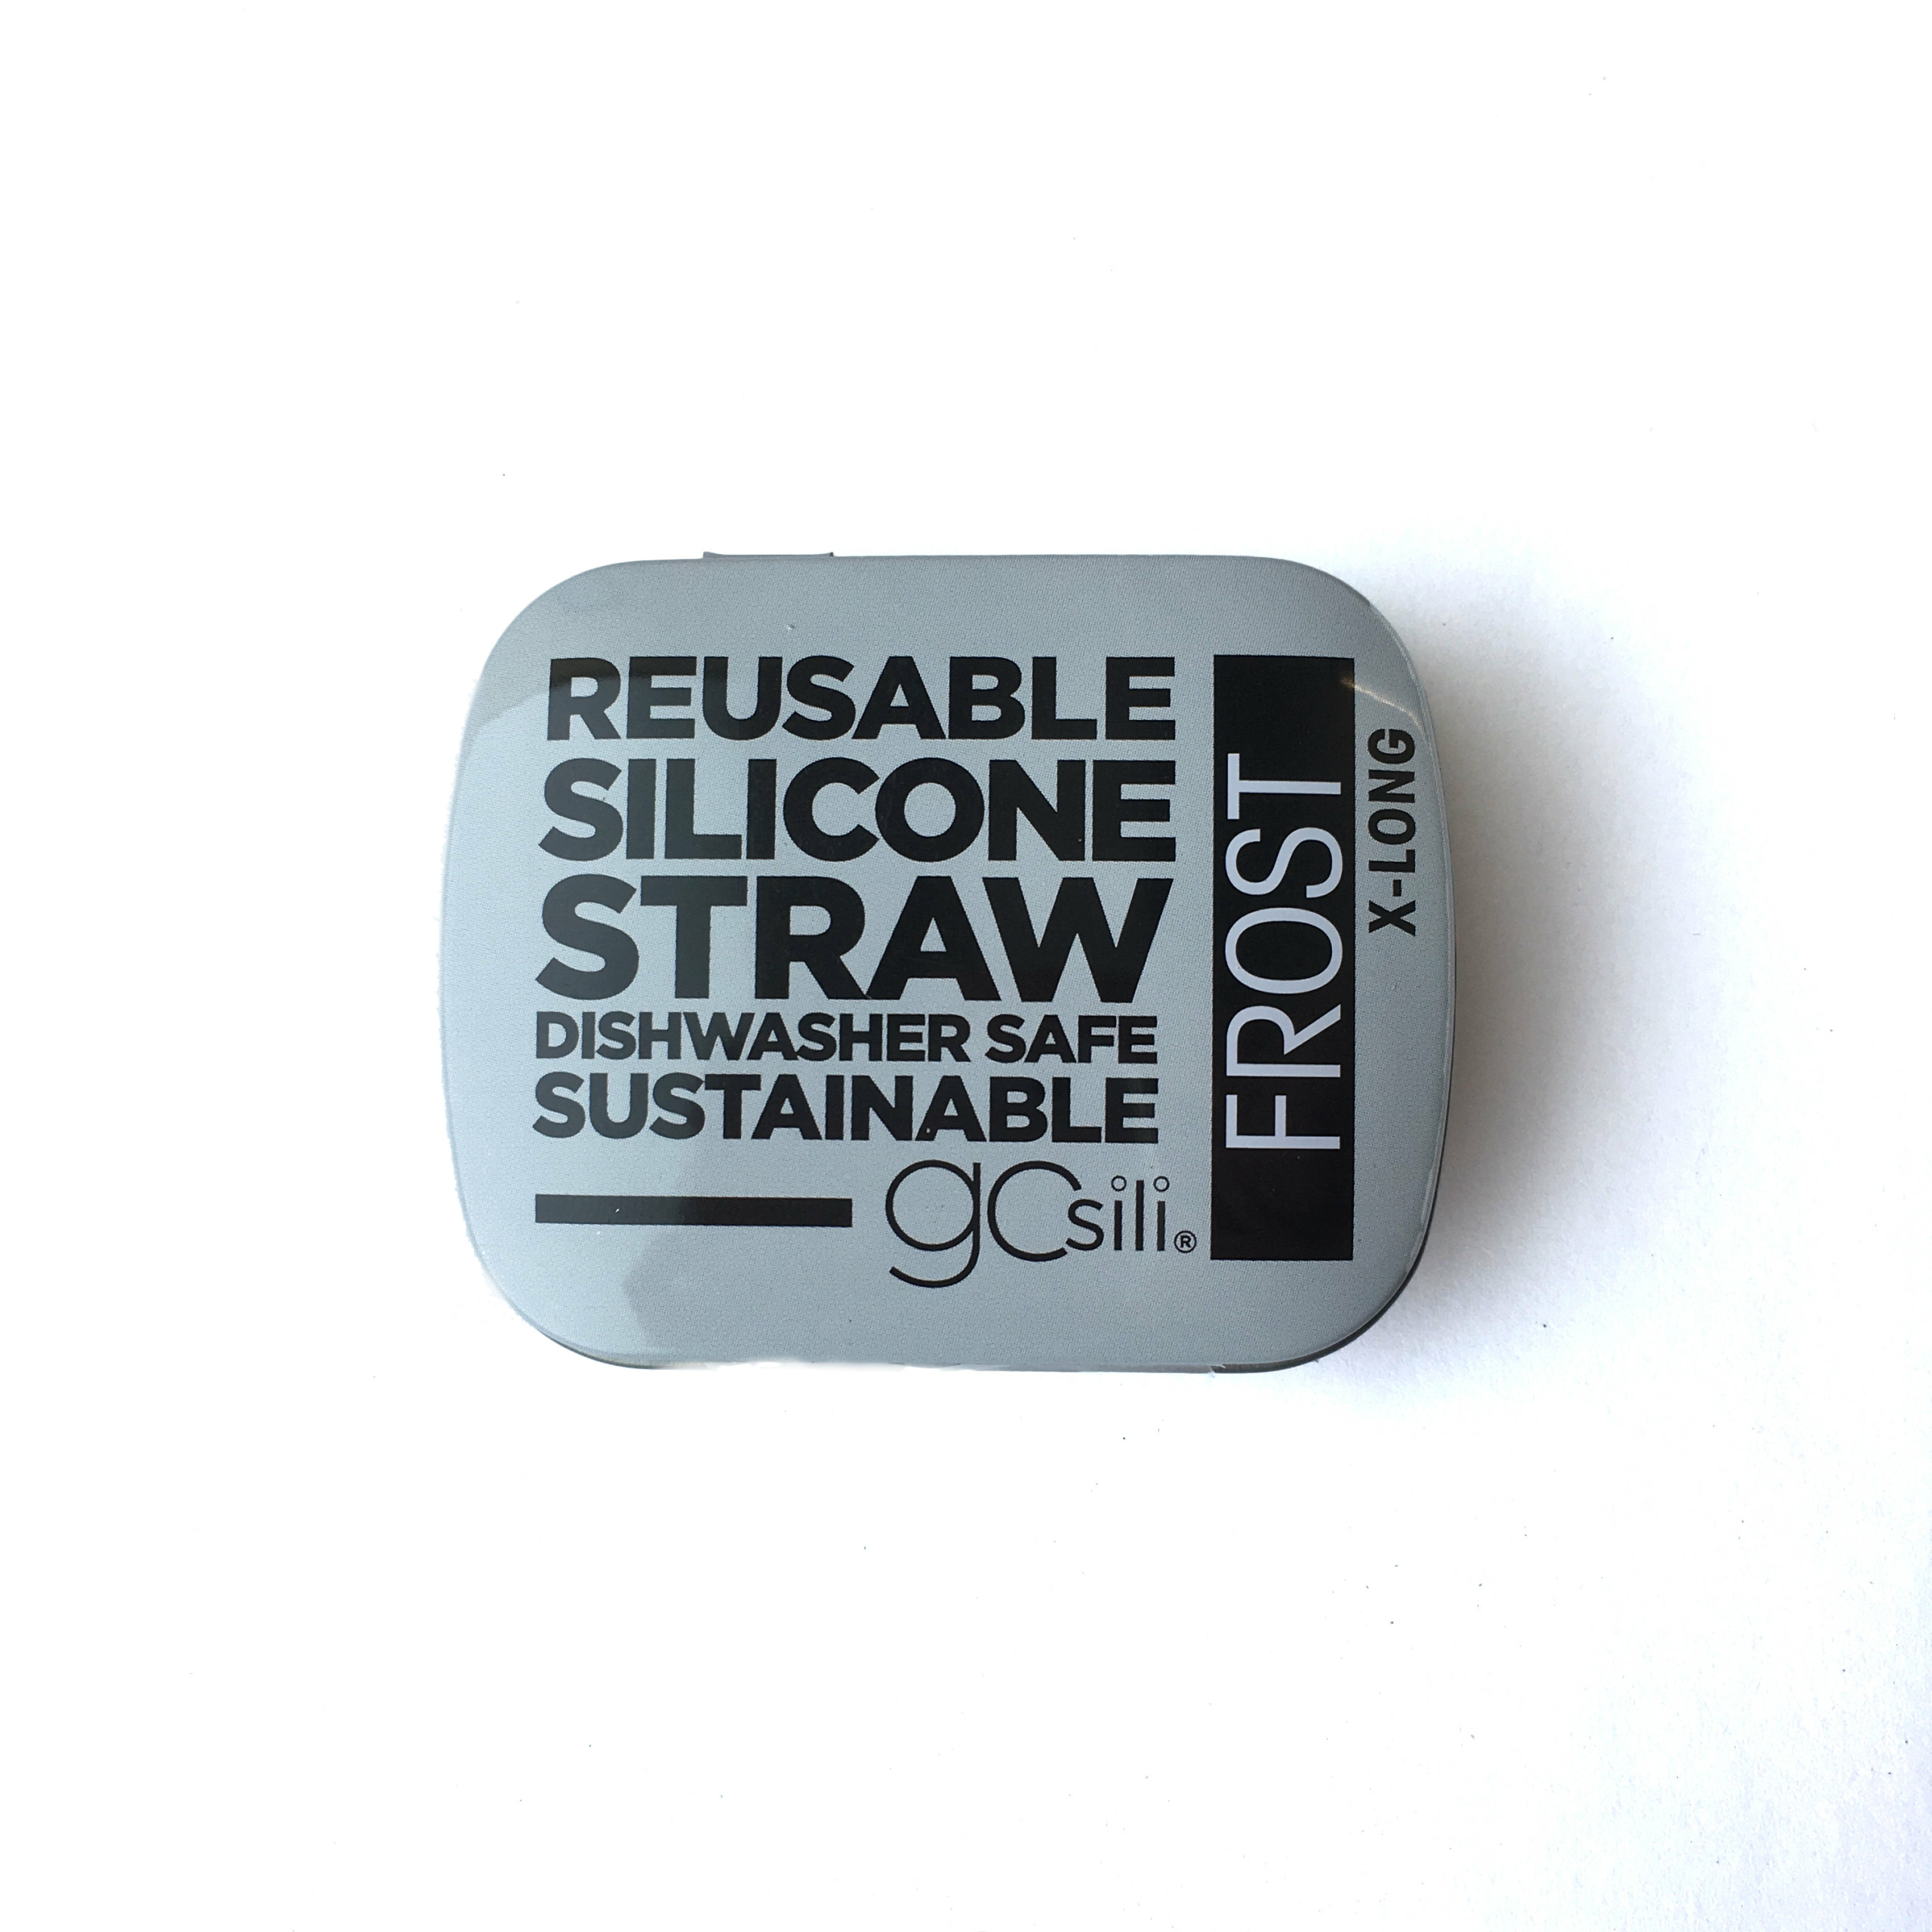 Reusable Silicone Straw X-Long Travel Case Frost